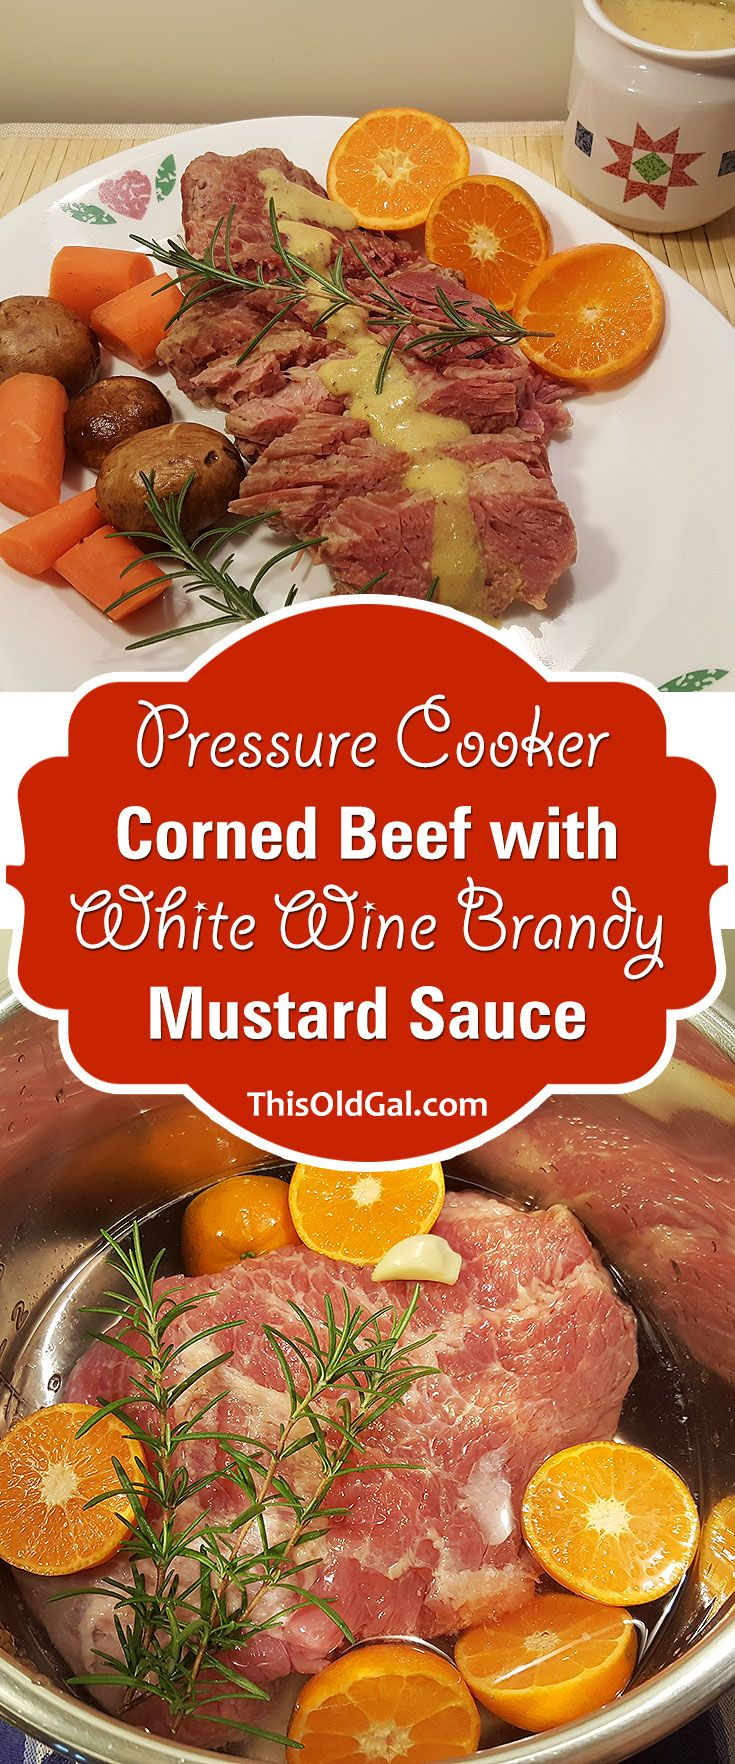 Pressure Cooker Corned Beef with White Wine Brandy Mustard Sauce via @thisoldgalcooks